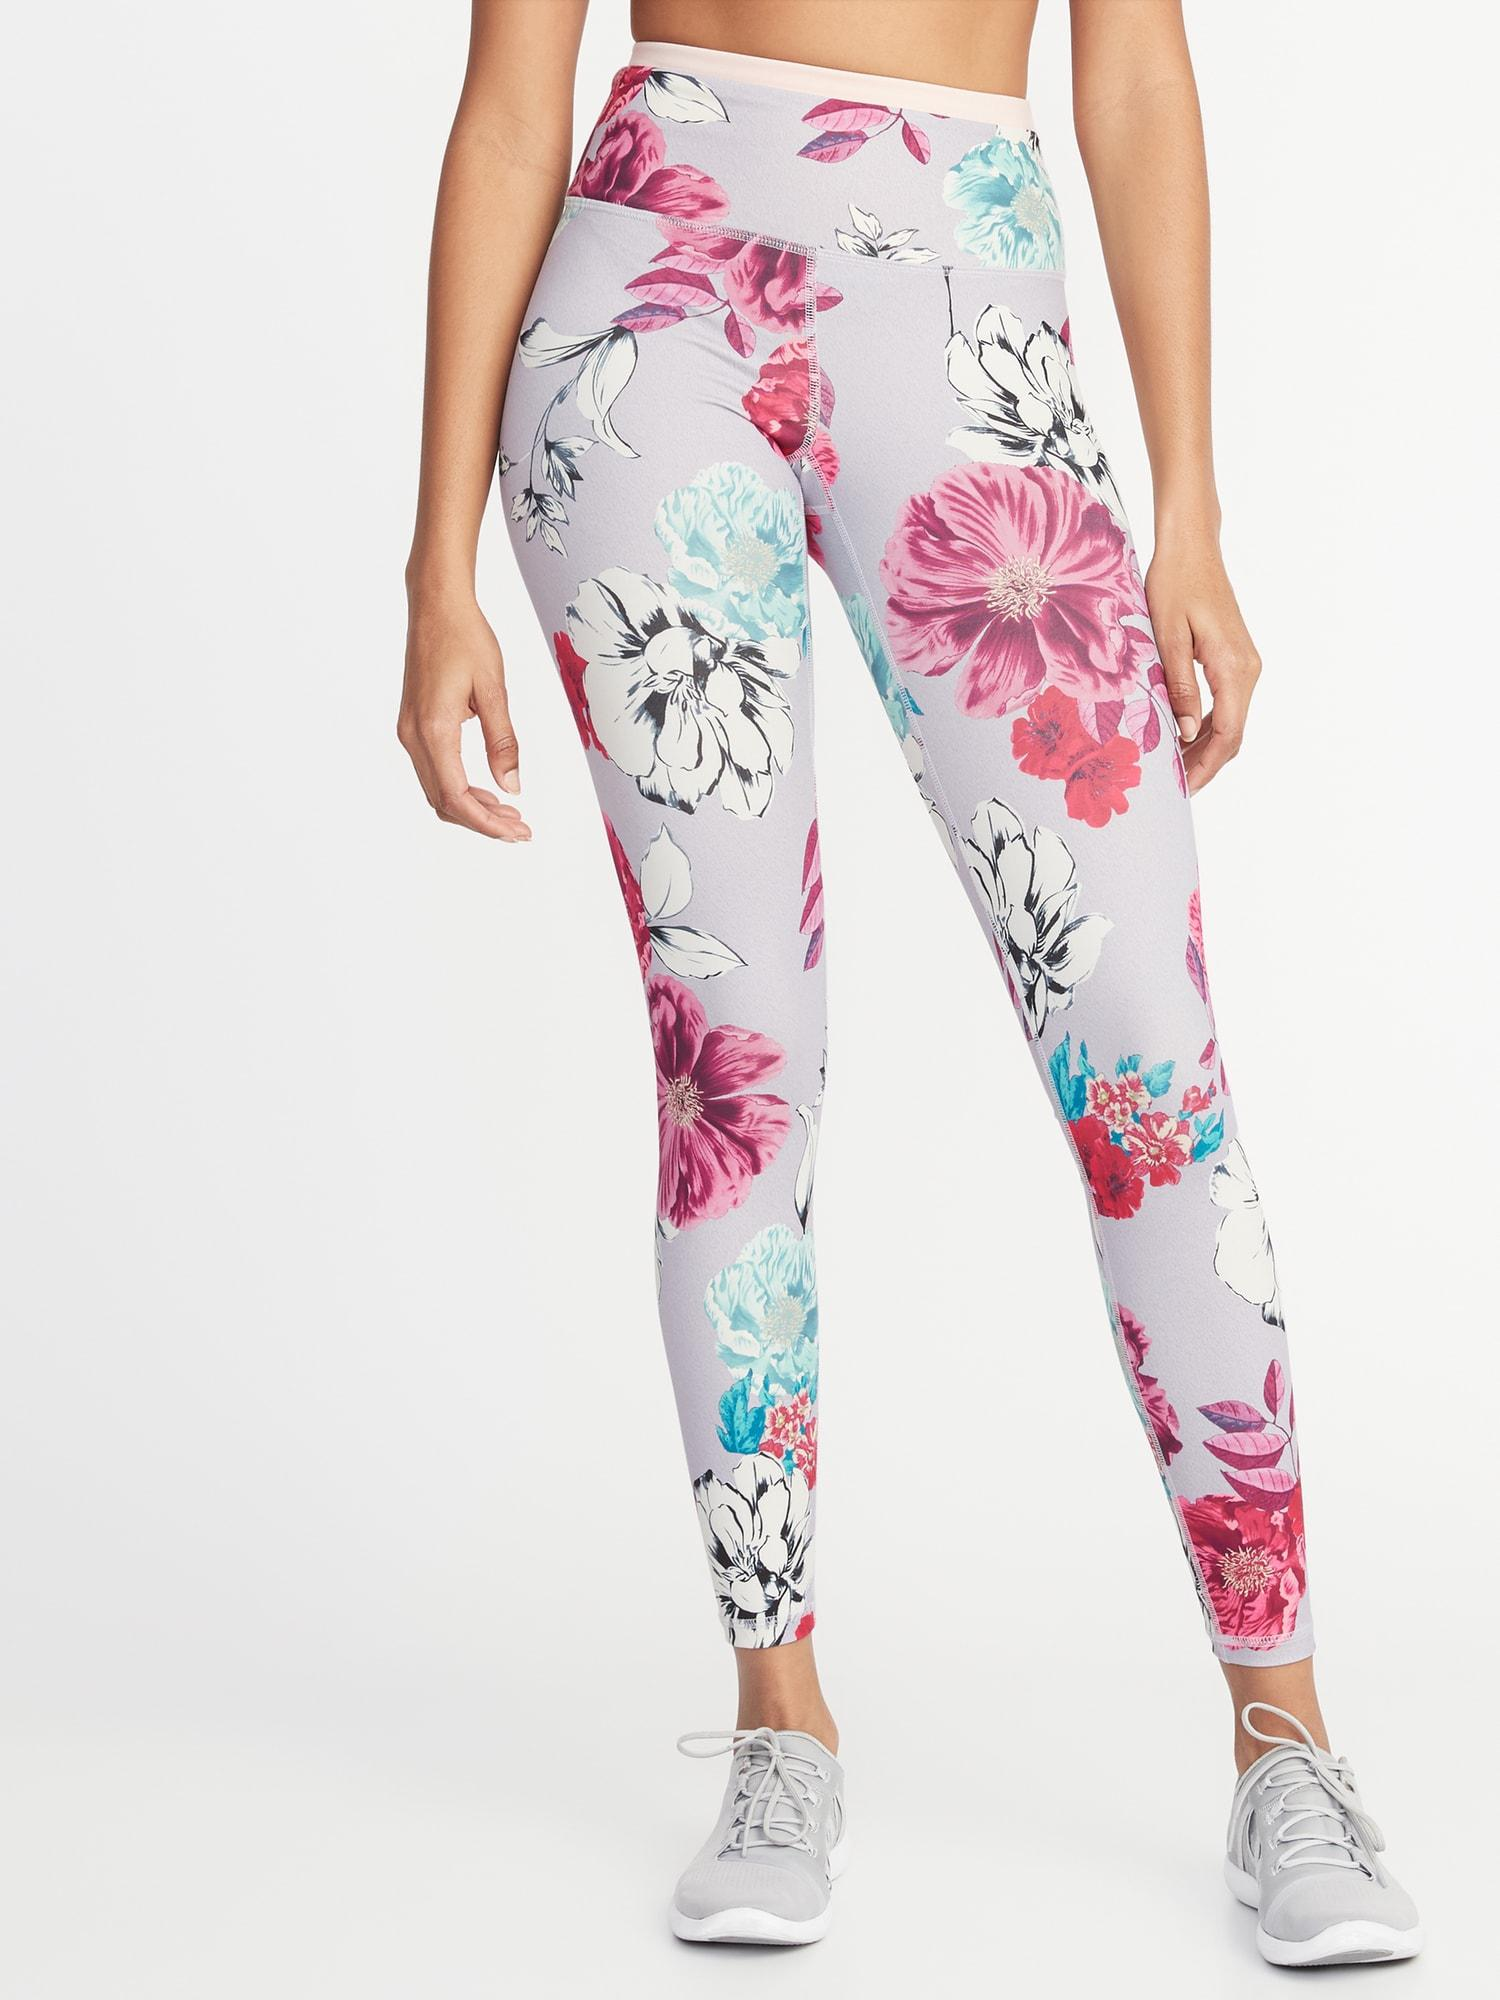 bbfb393fe2f Lyst - Old Navy High-rise Elevate Floral Compression Leggings in Pink